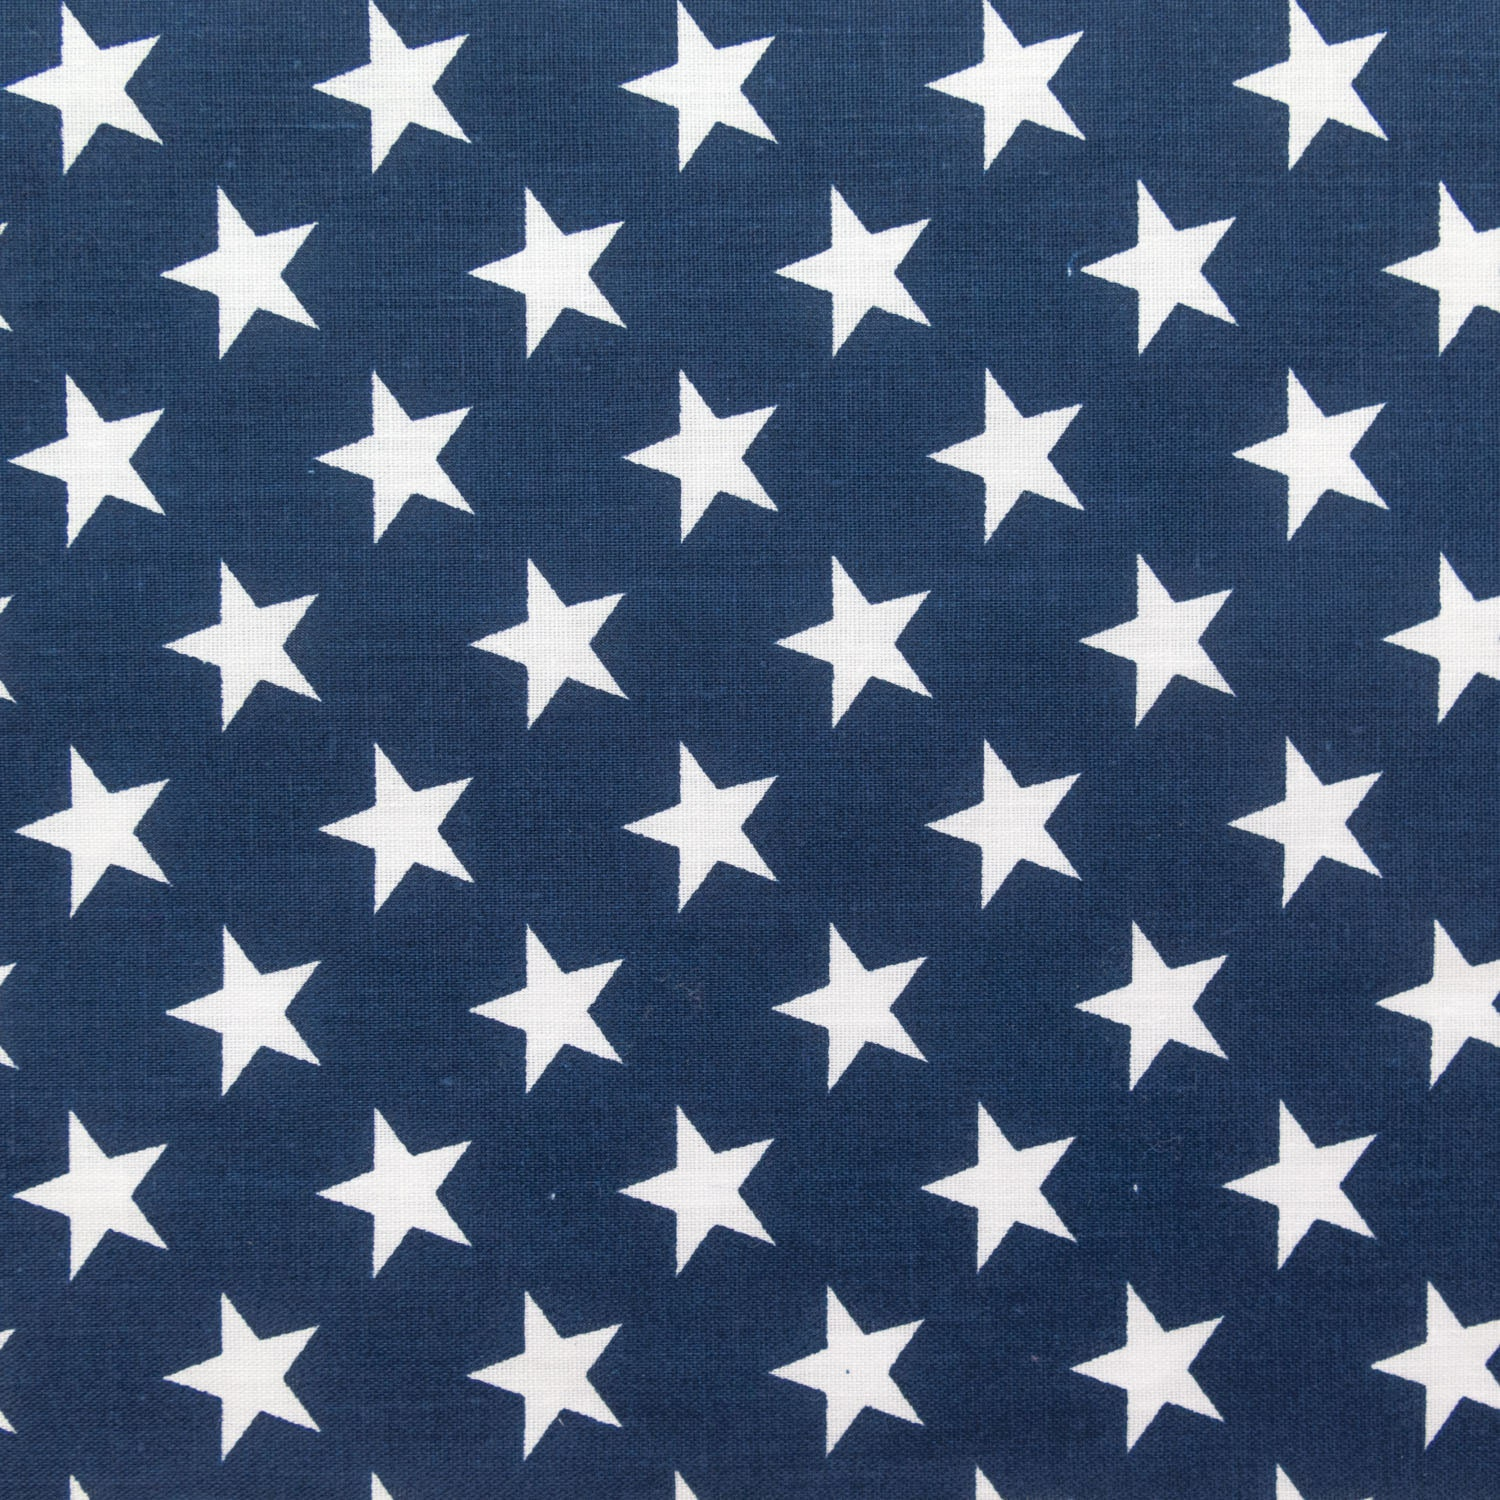 Poly cotton print white stars on navy background 60 for Star fabric australia